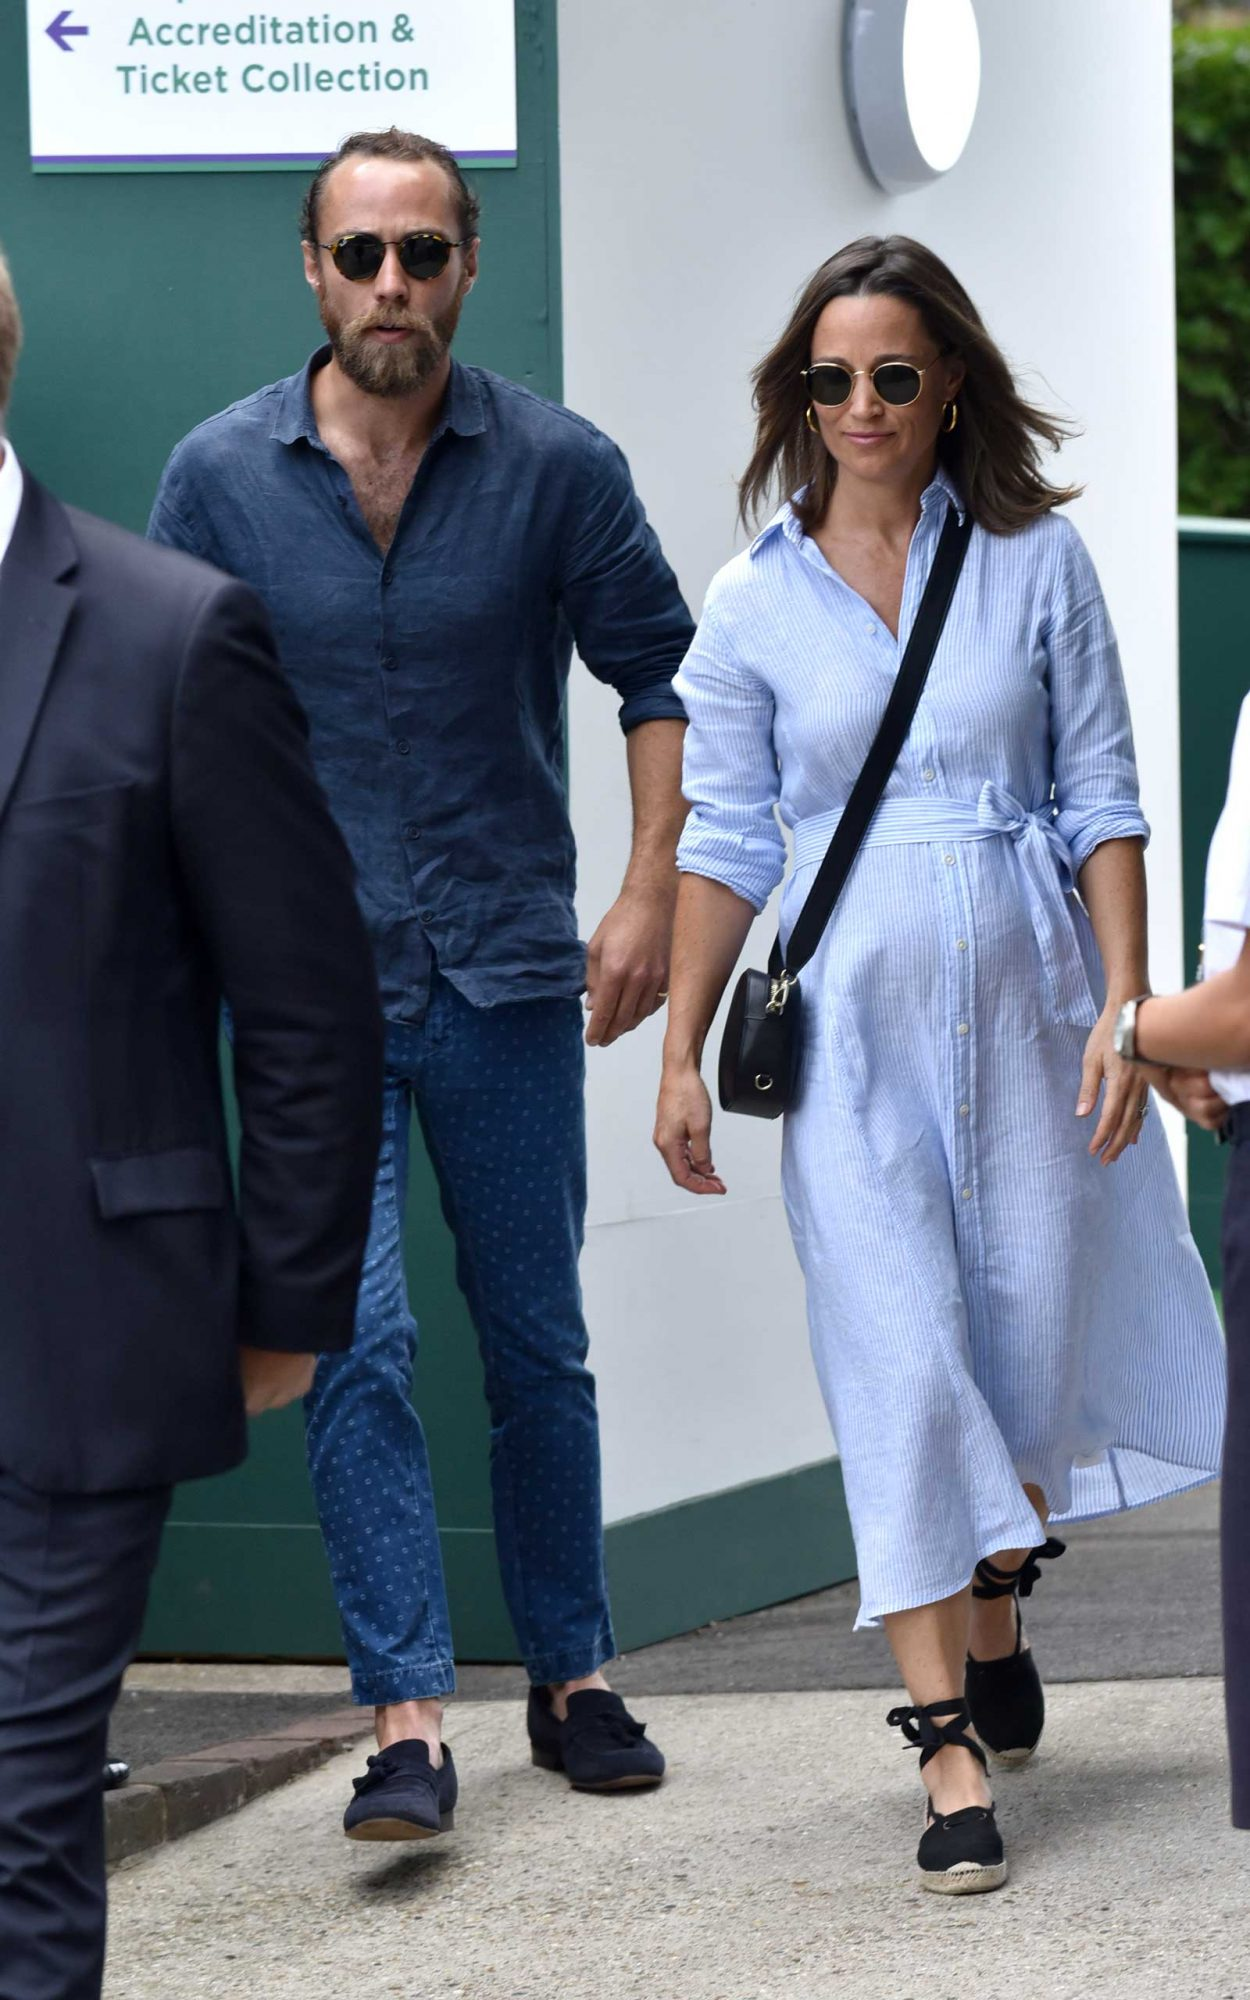 Pippa Middleton and James Middleton seen on day nine of The Championships at Wimbledon, London on July 11, 2018